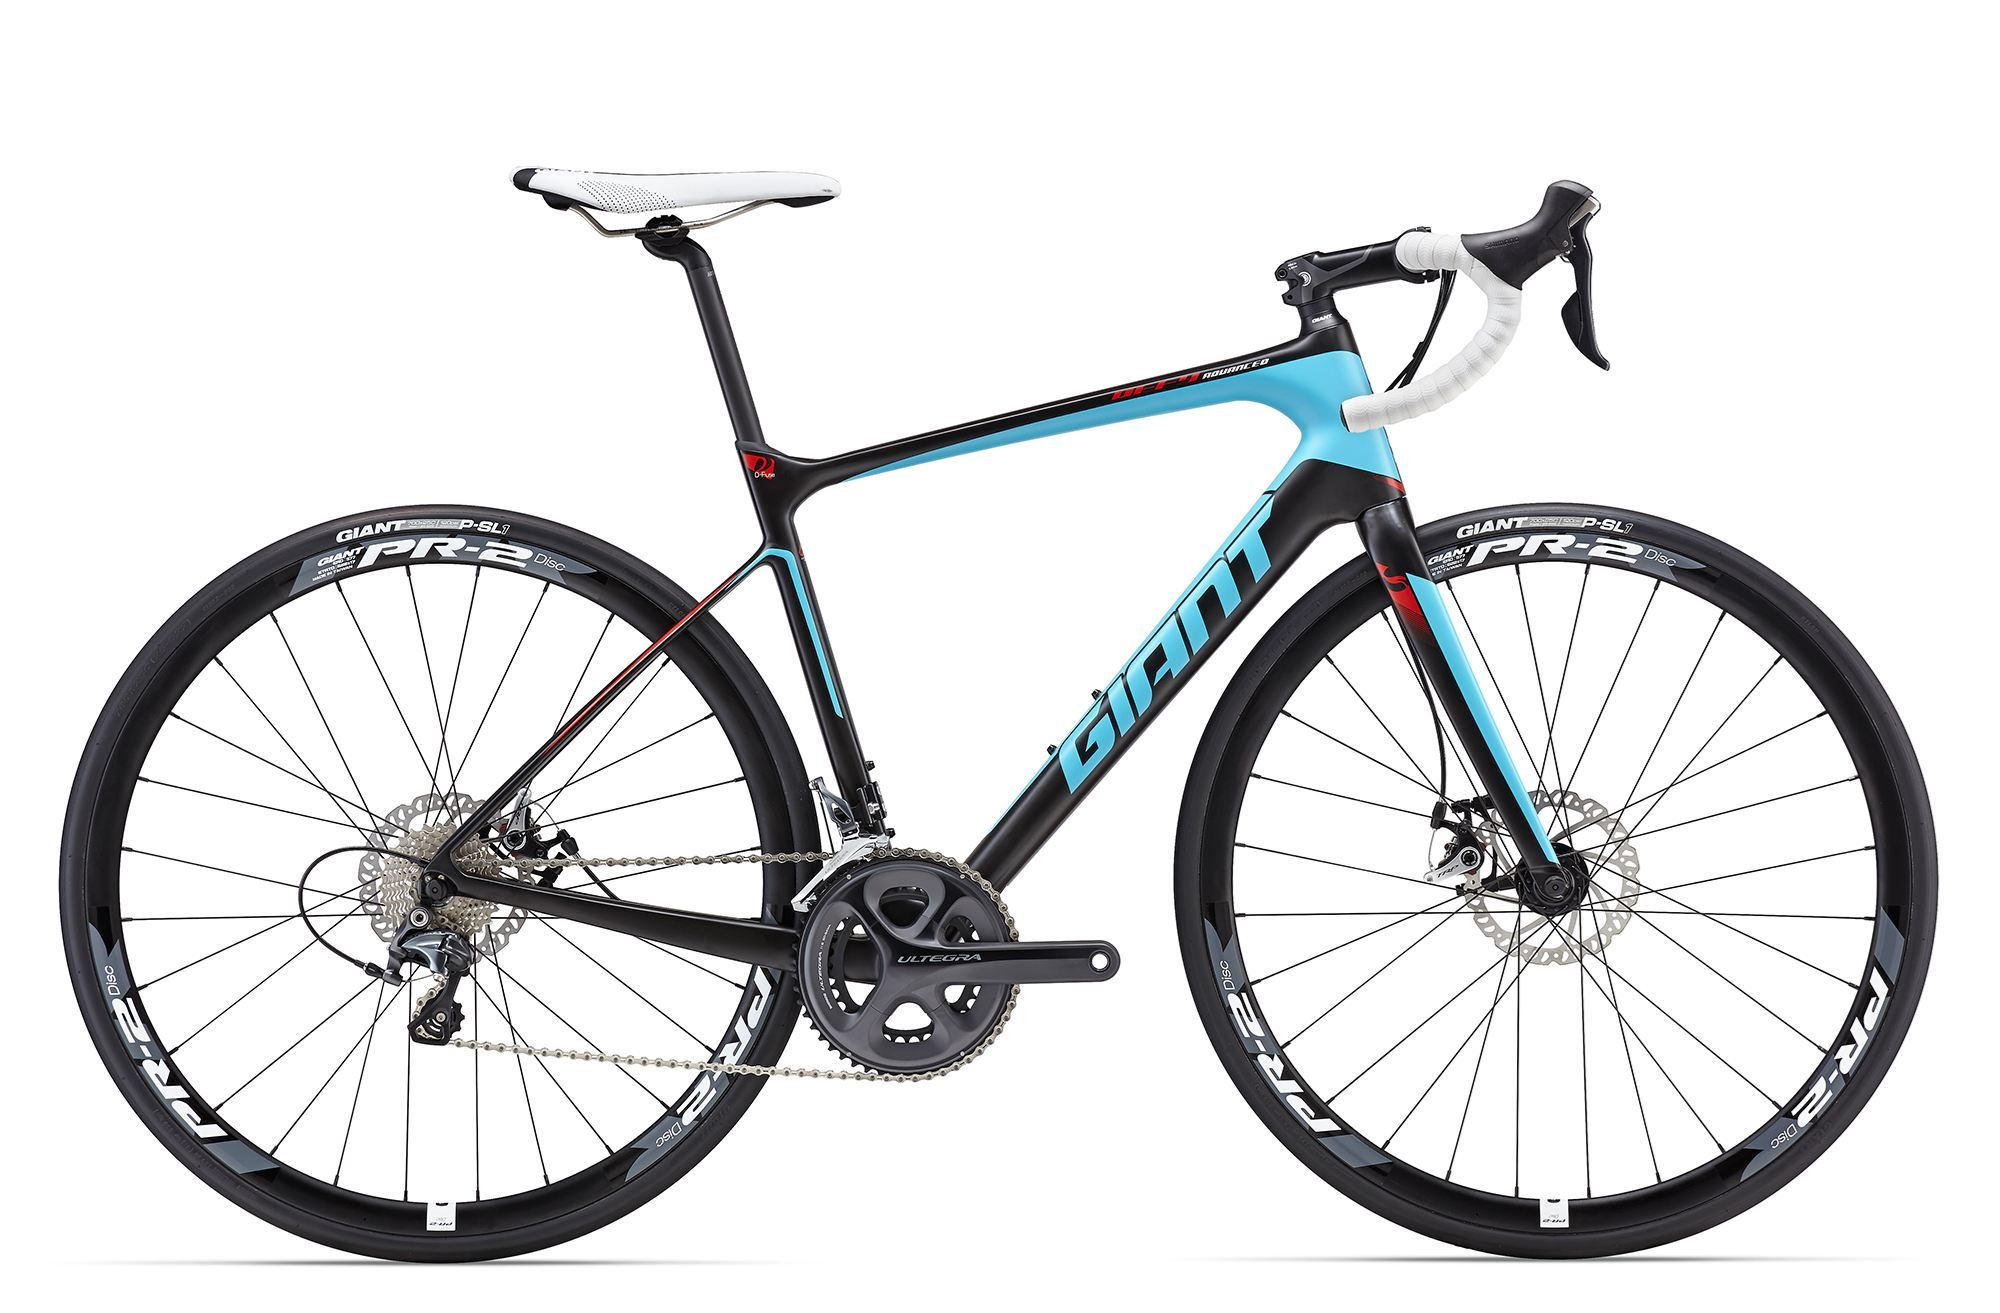 2016 Giant Defy Advanced 1 | Giant bicycles / Giant bikes UK | United Kingdom